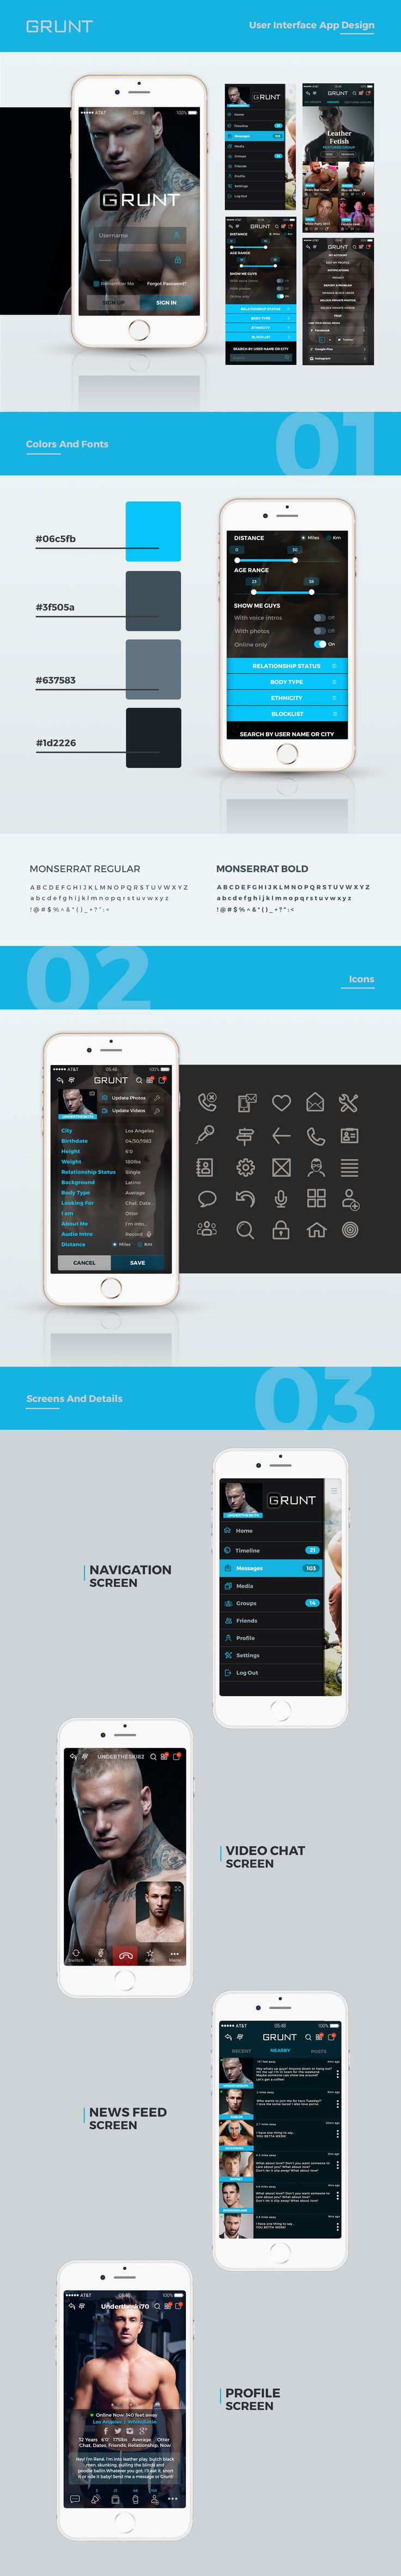 check out my behance project grunt user interface app design httpswww behance netgallery49964215grunt user interface app design pinterest